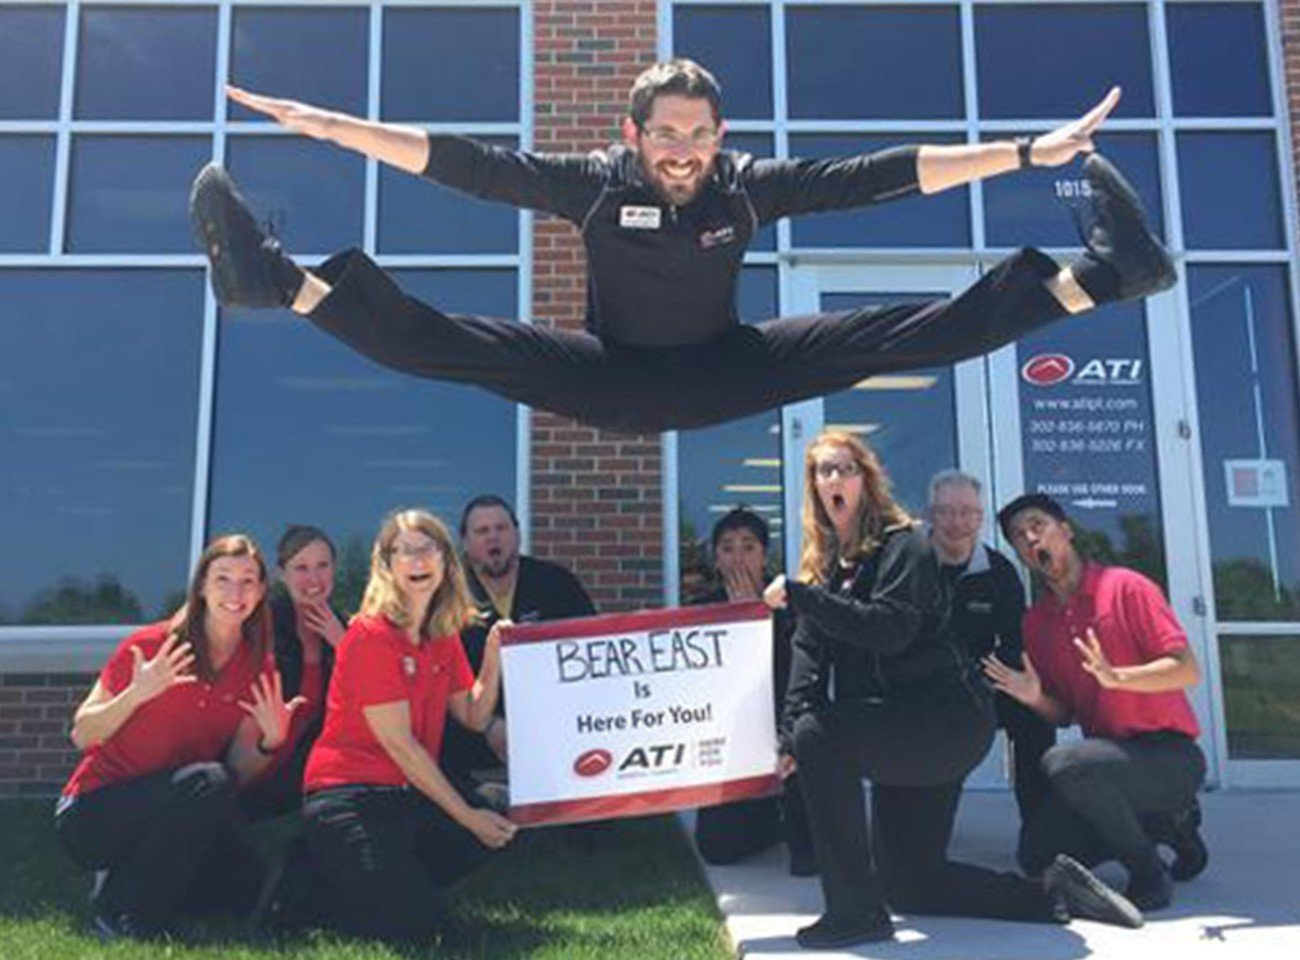 ATI Physical Therapy Careers